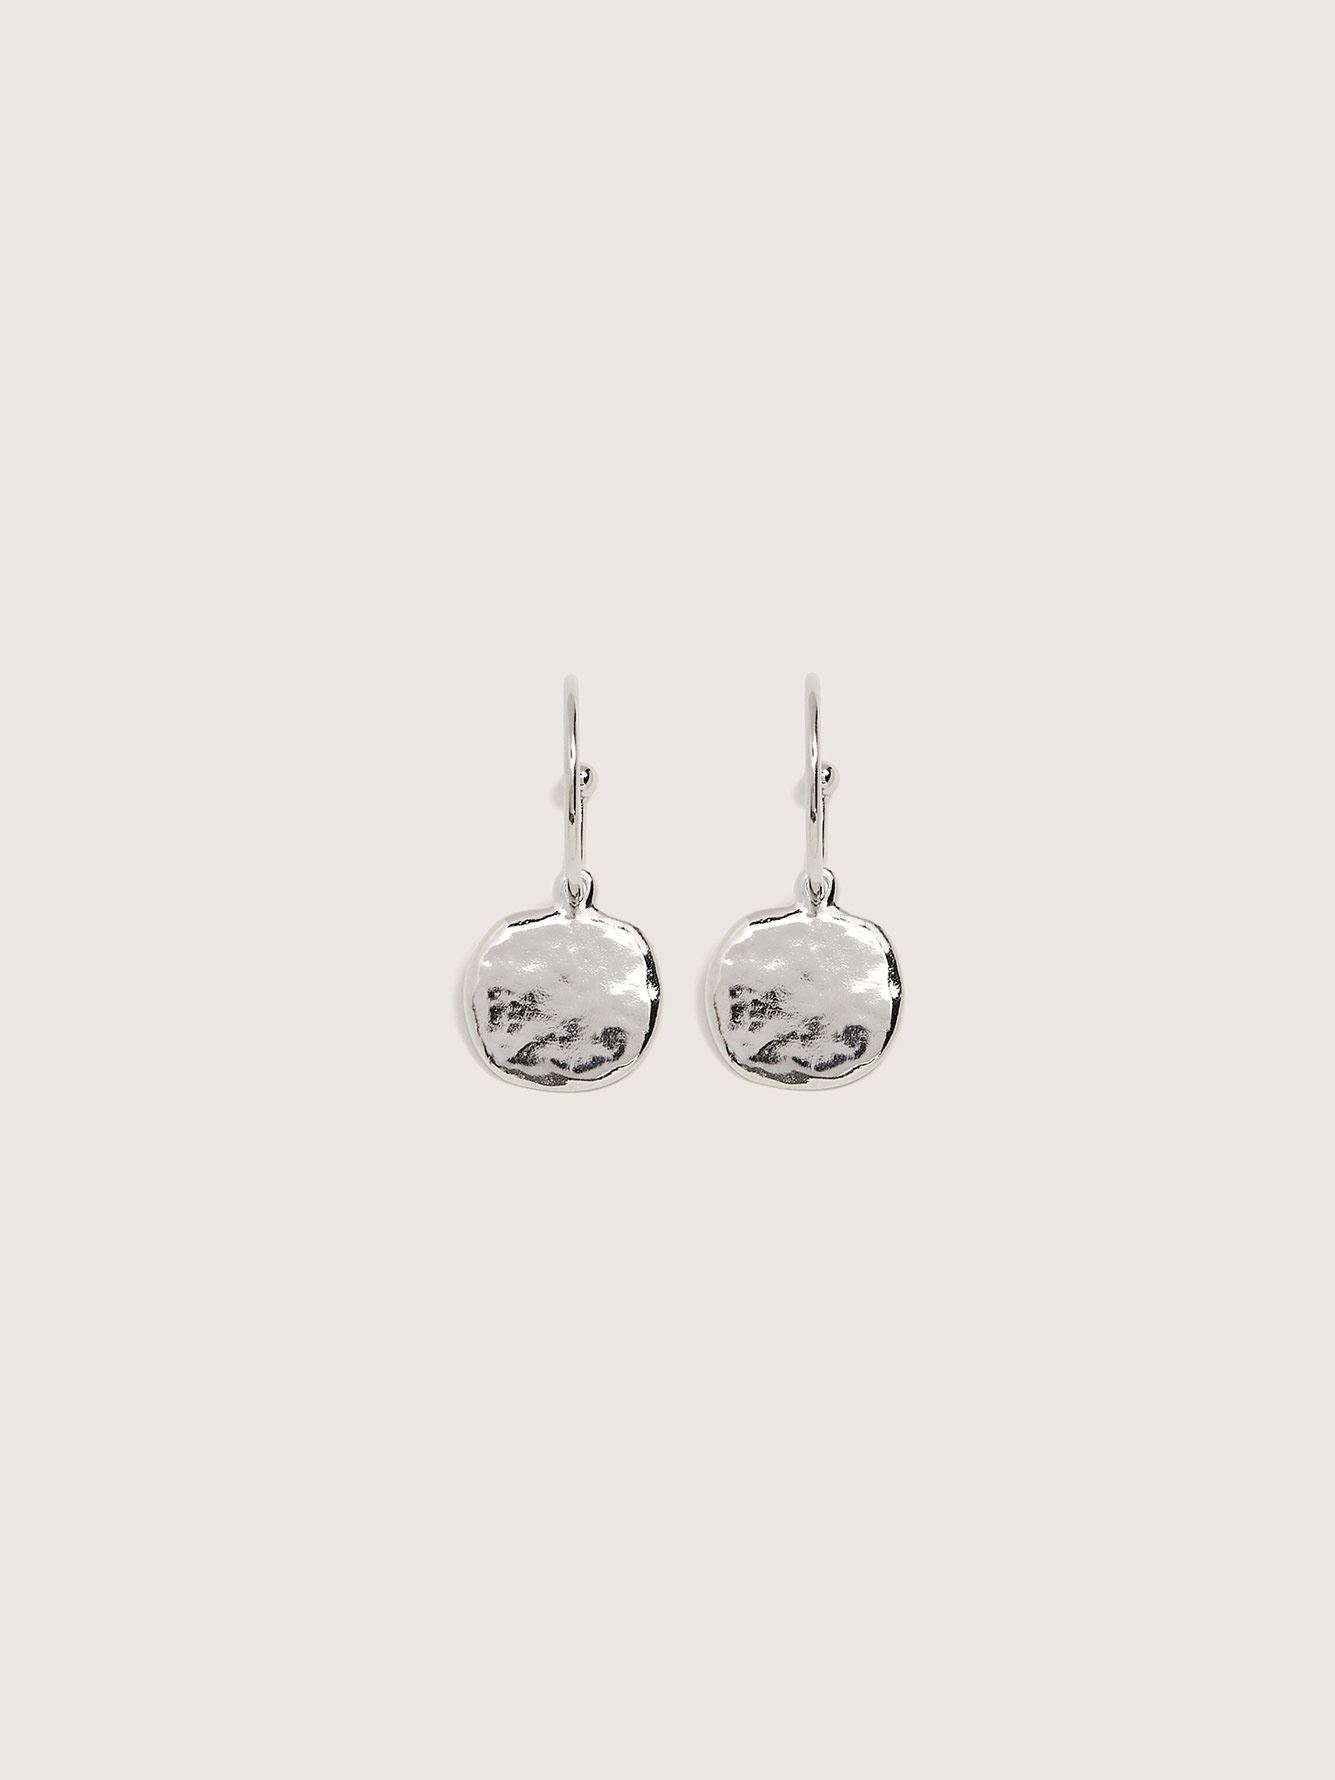 Rhodium Plated Moonwalk 2-in-1 Hoop Earrings - Biko